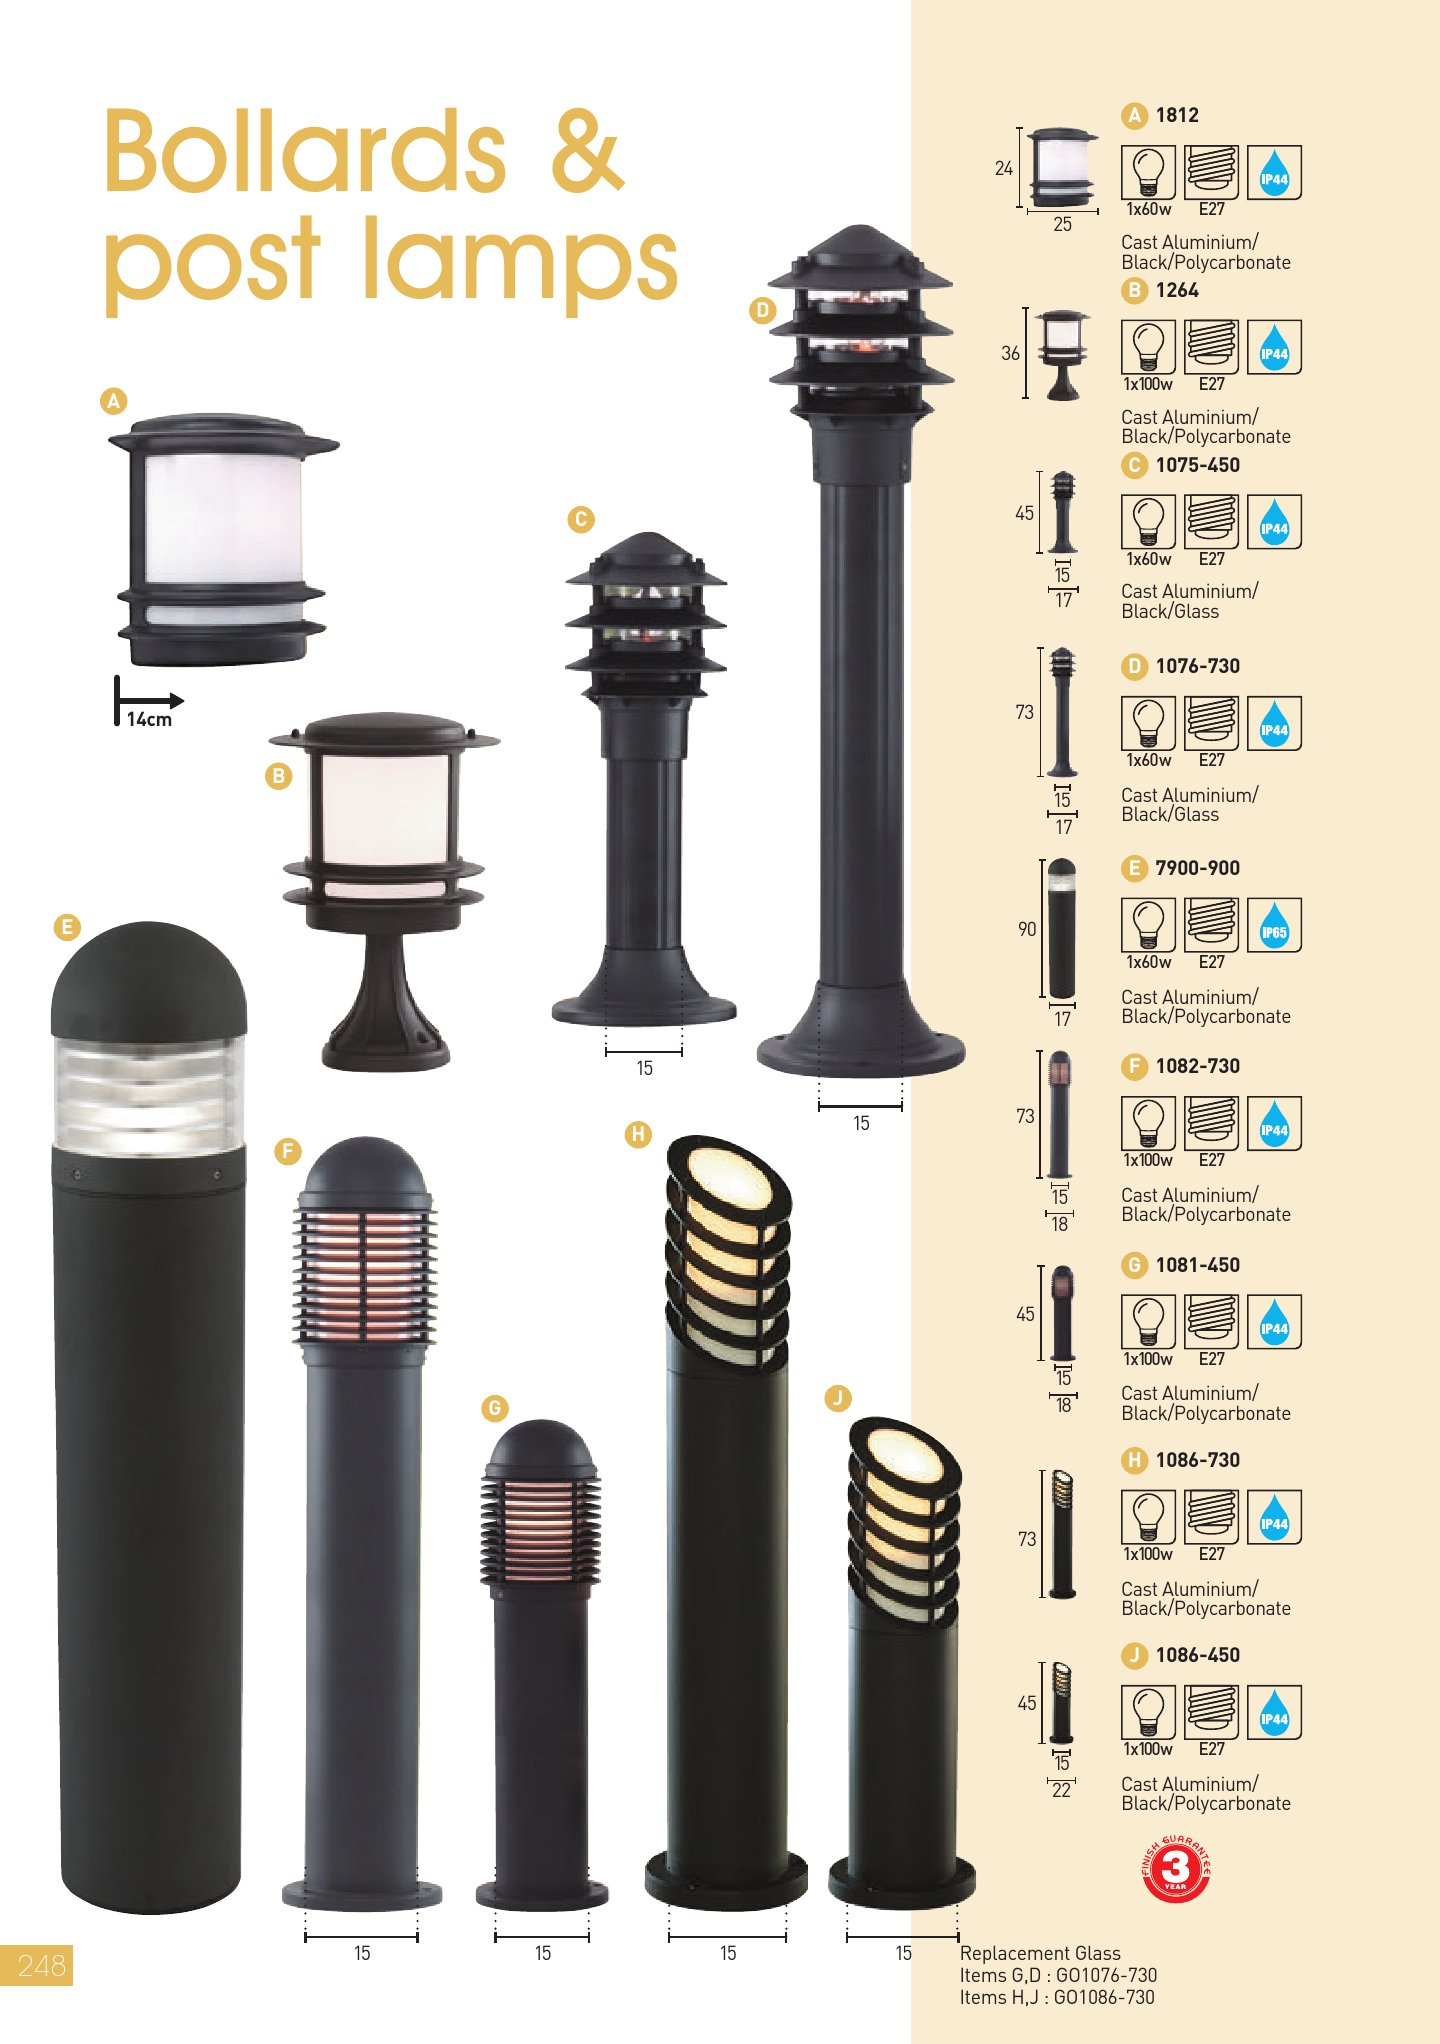 Bollards & Post Lamps 1812